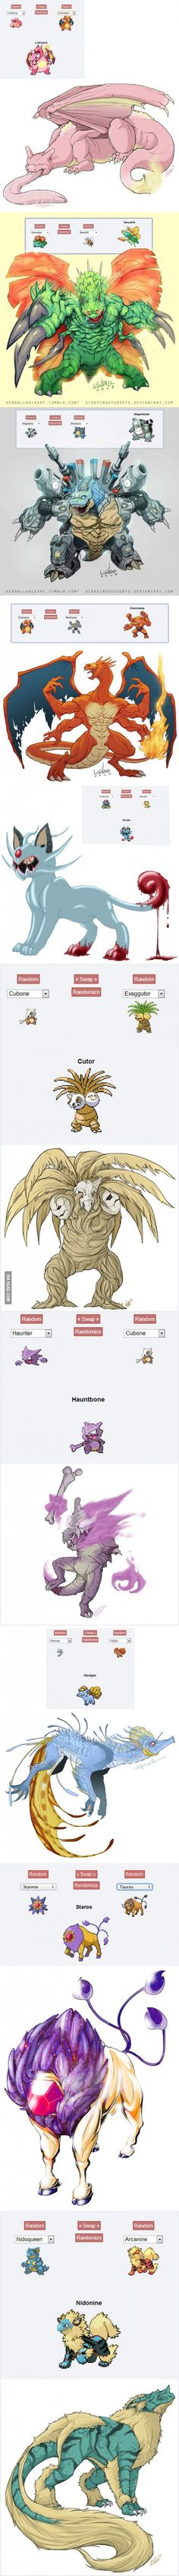 Pokemon Fusion Art